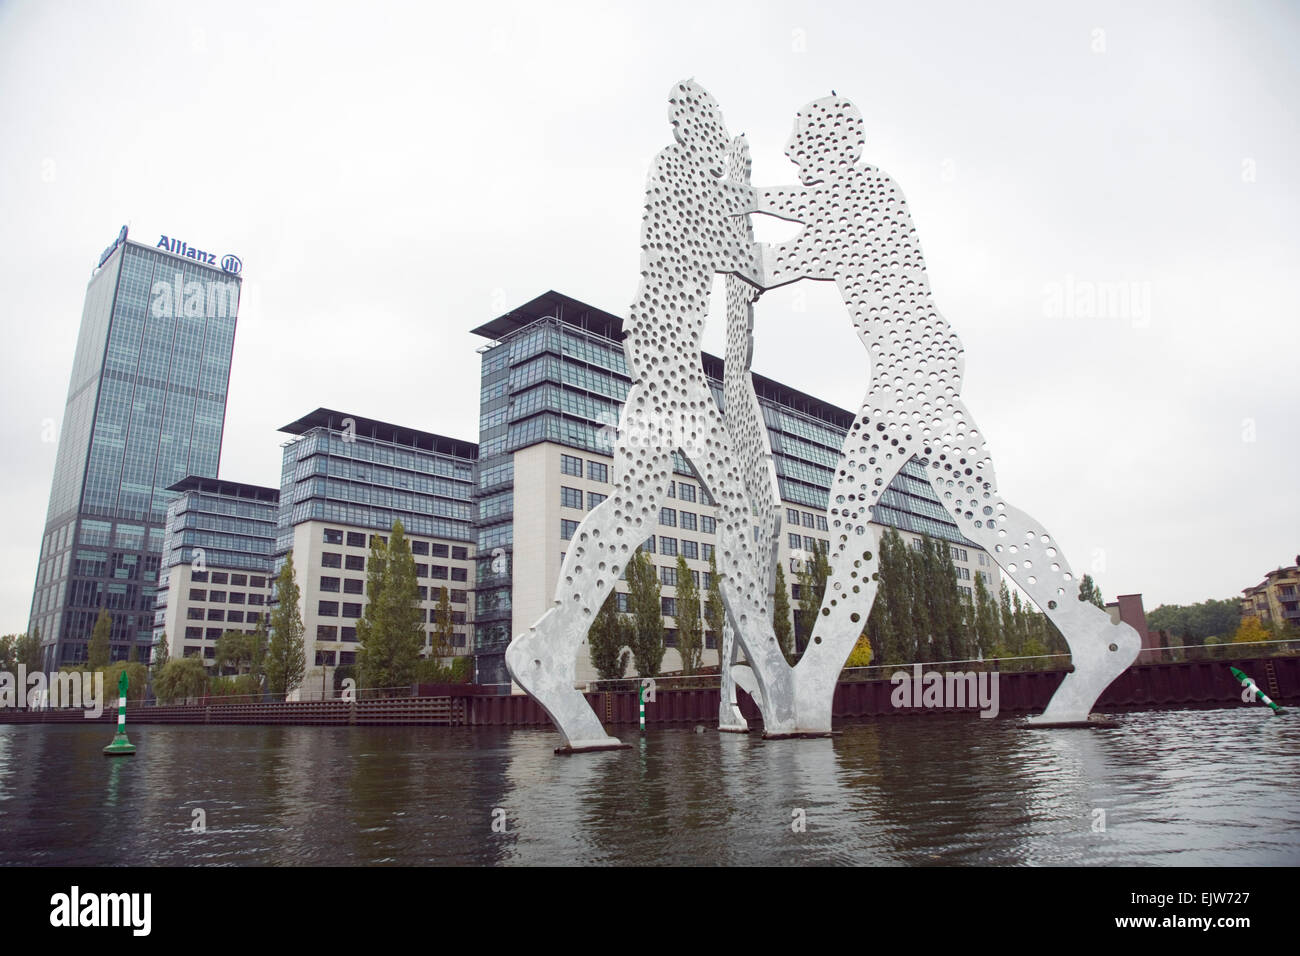 The statue 'Molecular man' by Jonatan Borofsky in Berlin in germany - Stock Image